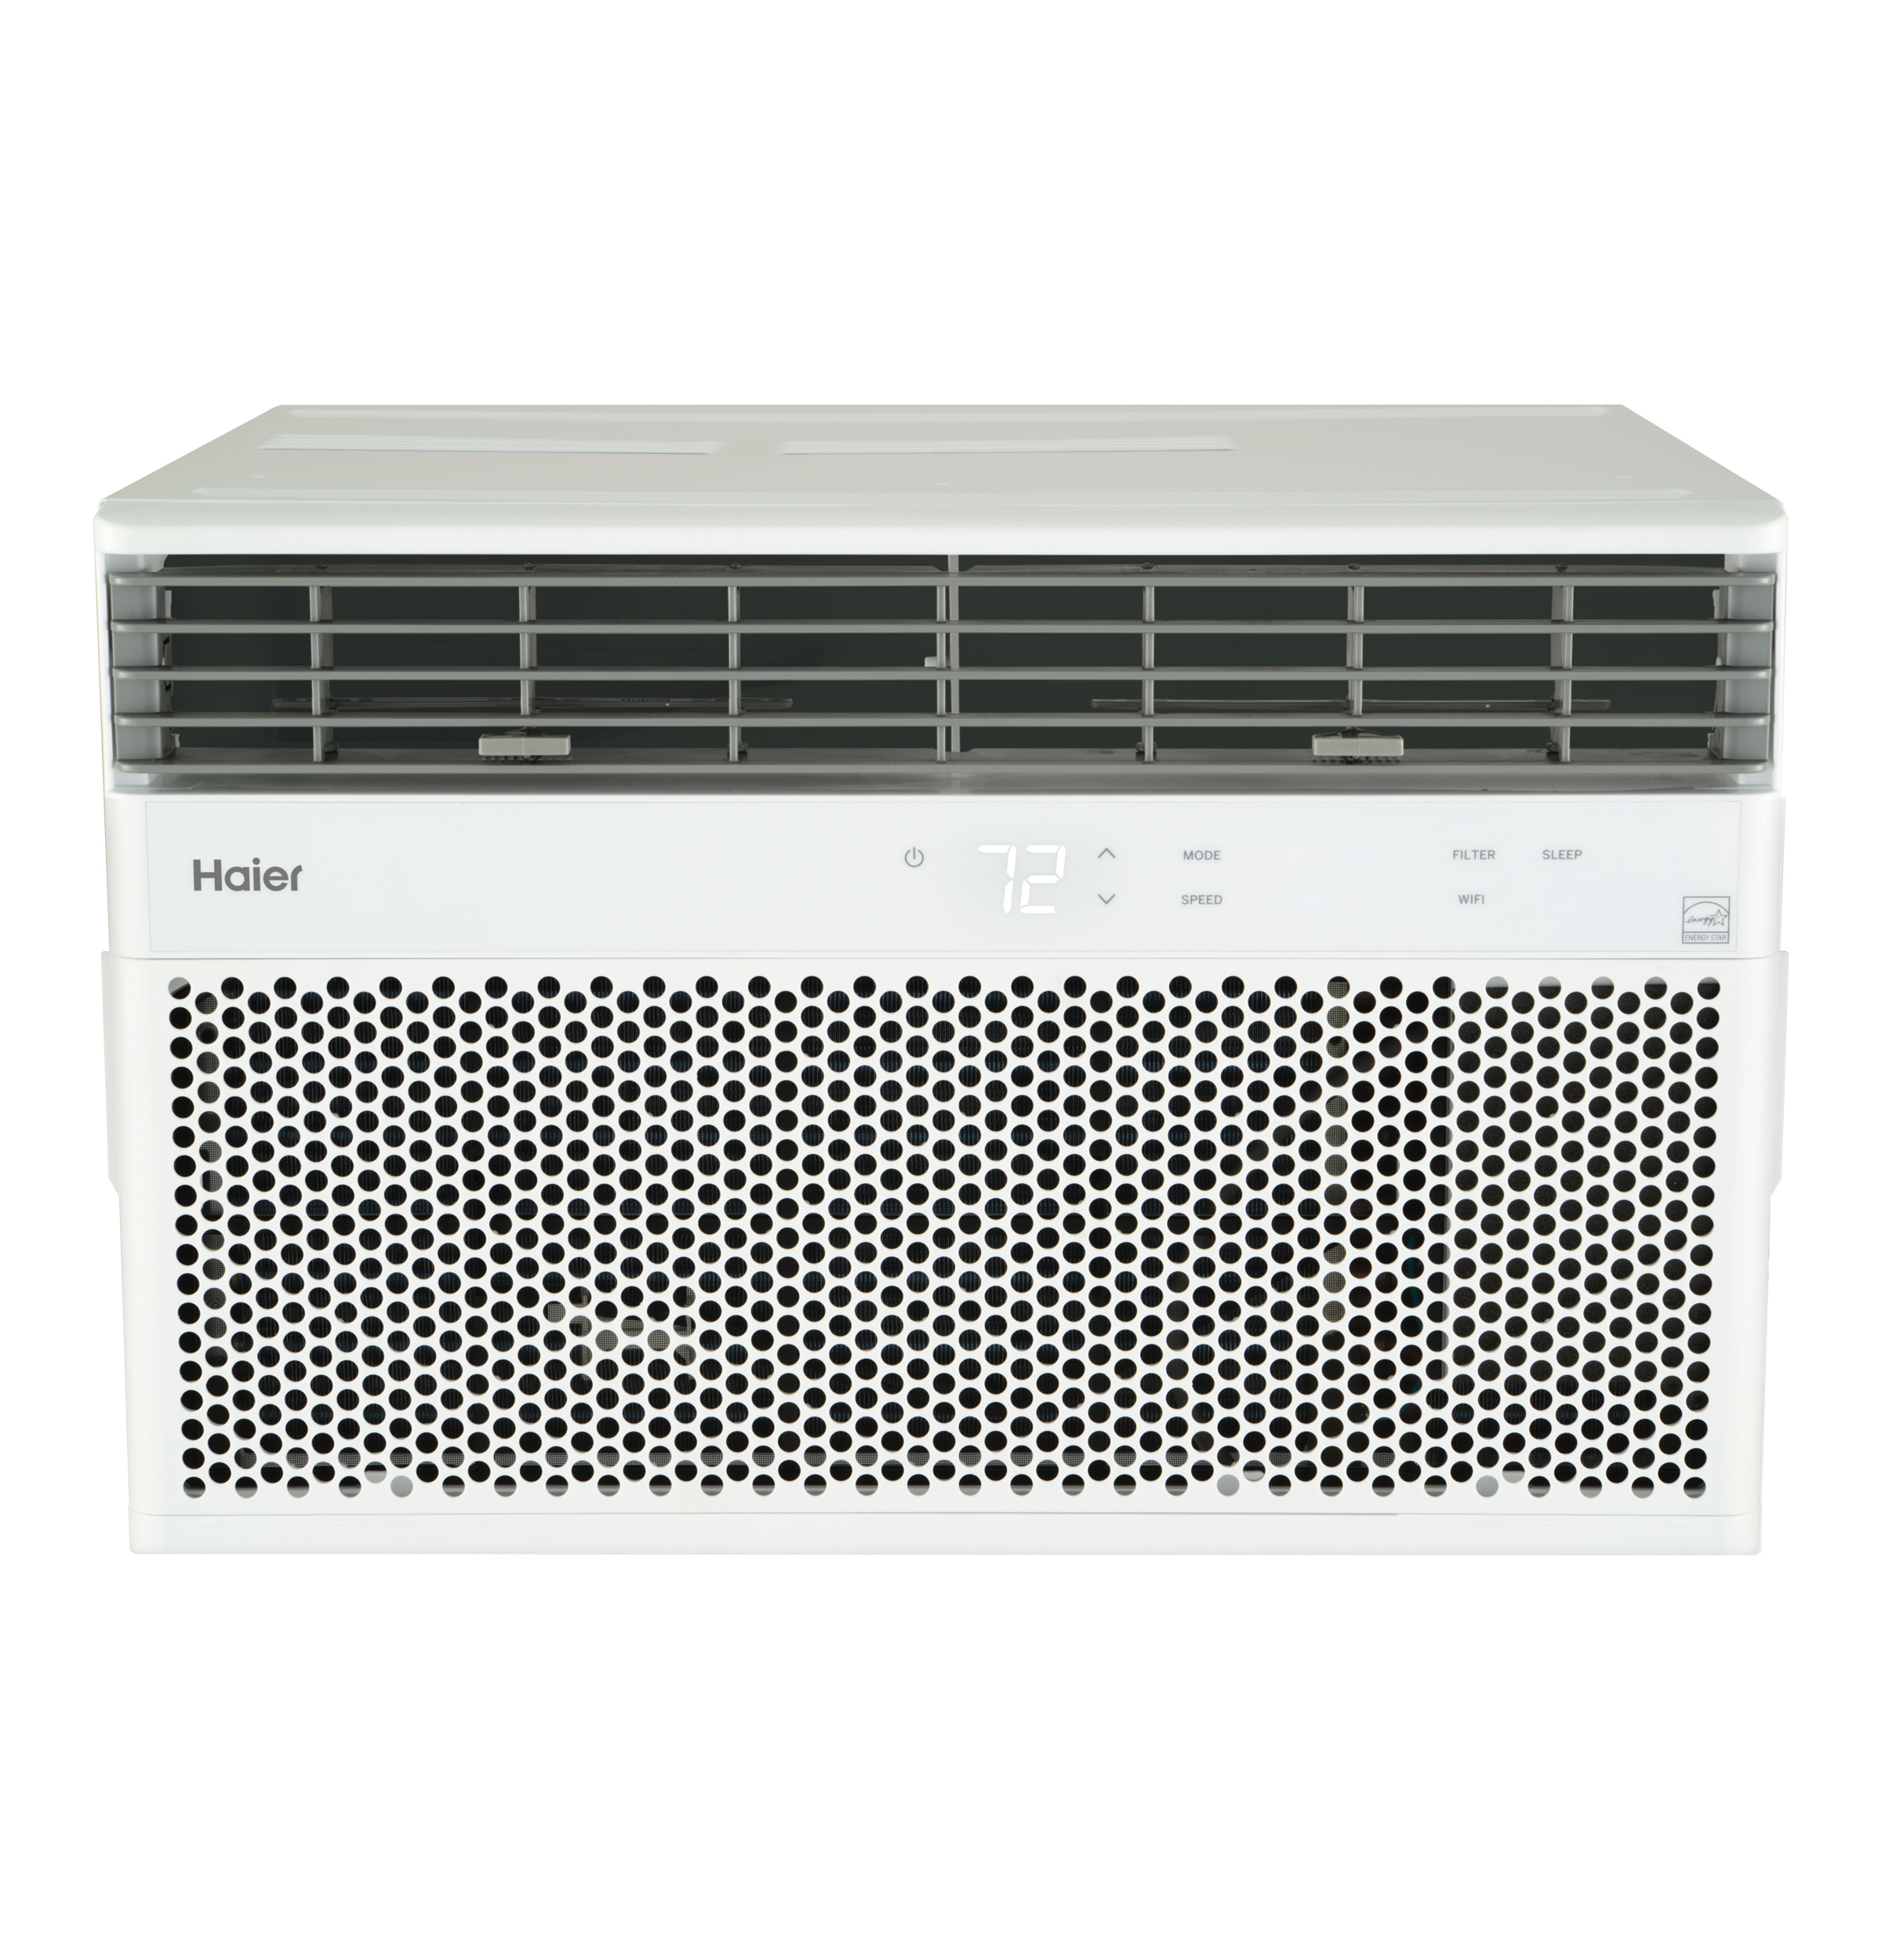 Haier Haier® ENERGY STAR® 10,000 BTU Smart Electronic Window Air Conditioner for Medium Rooms up to 450 sq. ft.